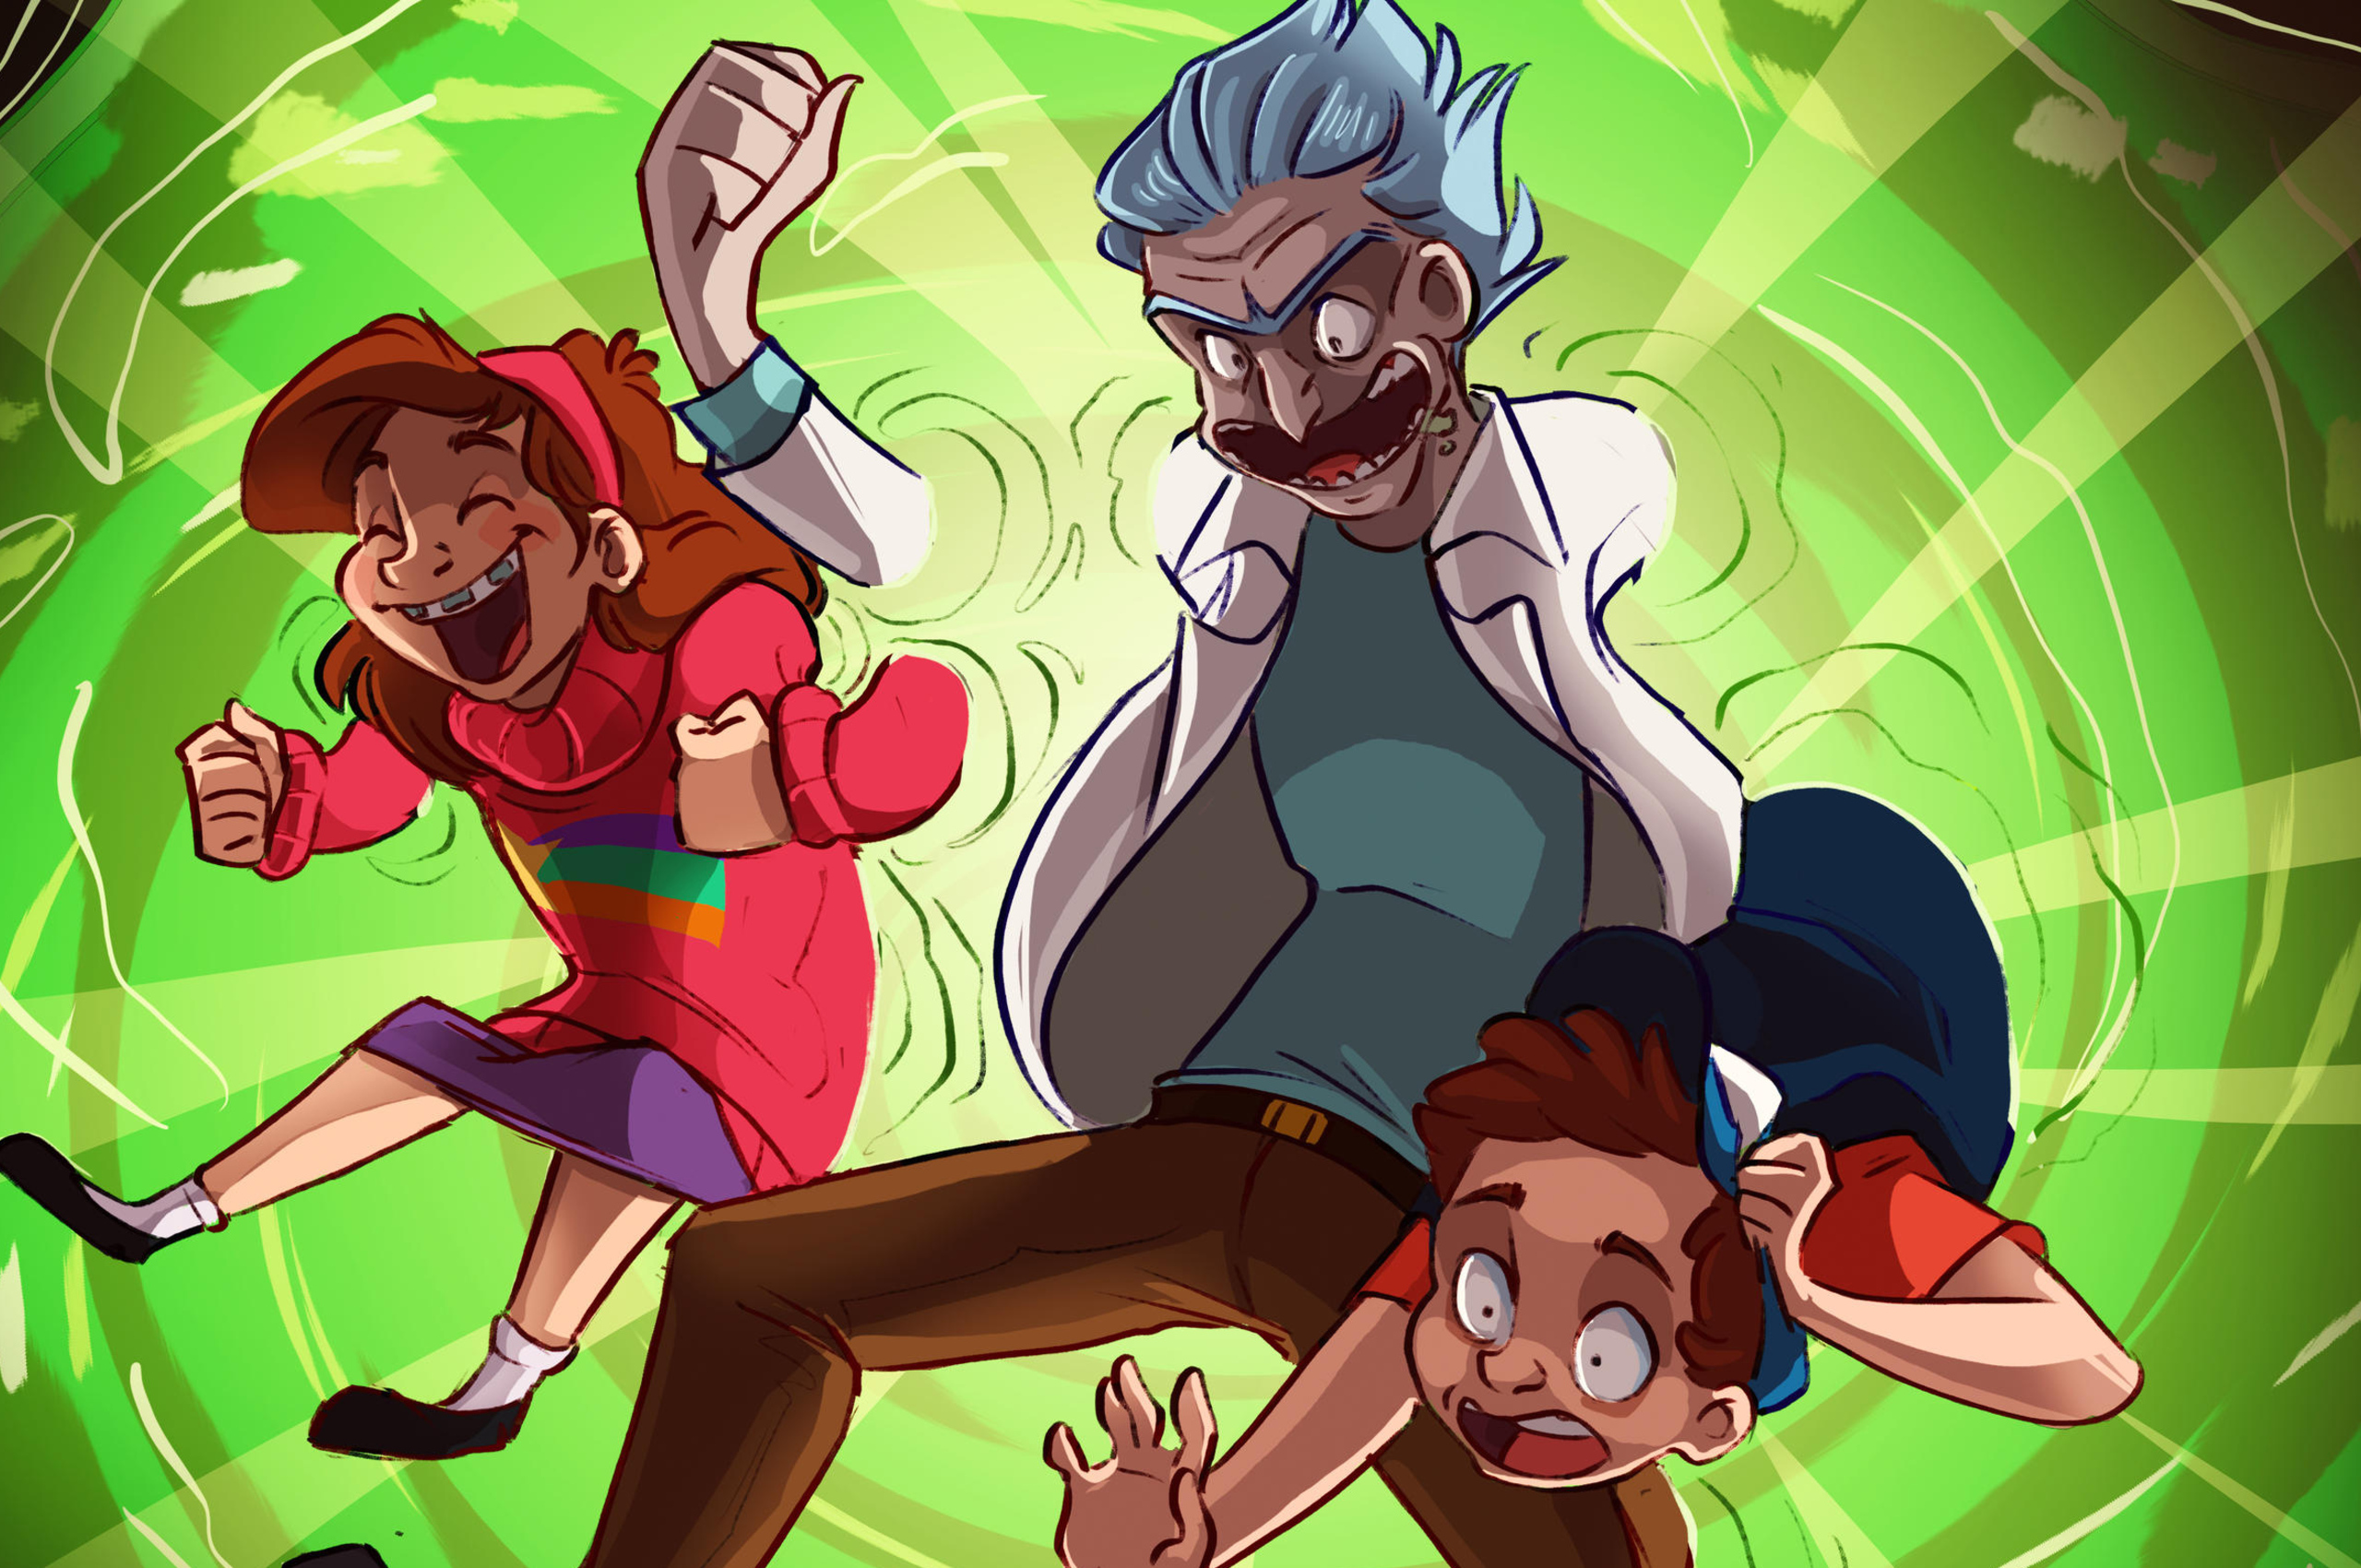 2560x1700 Crossover Rick And Morty Gravity Falls Chromebook